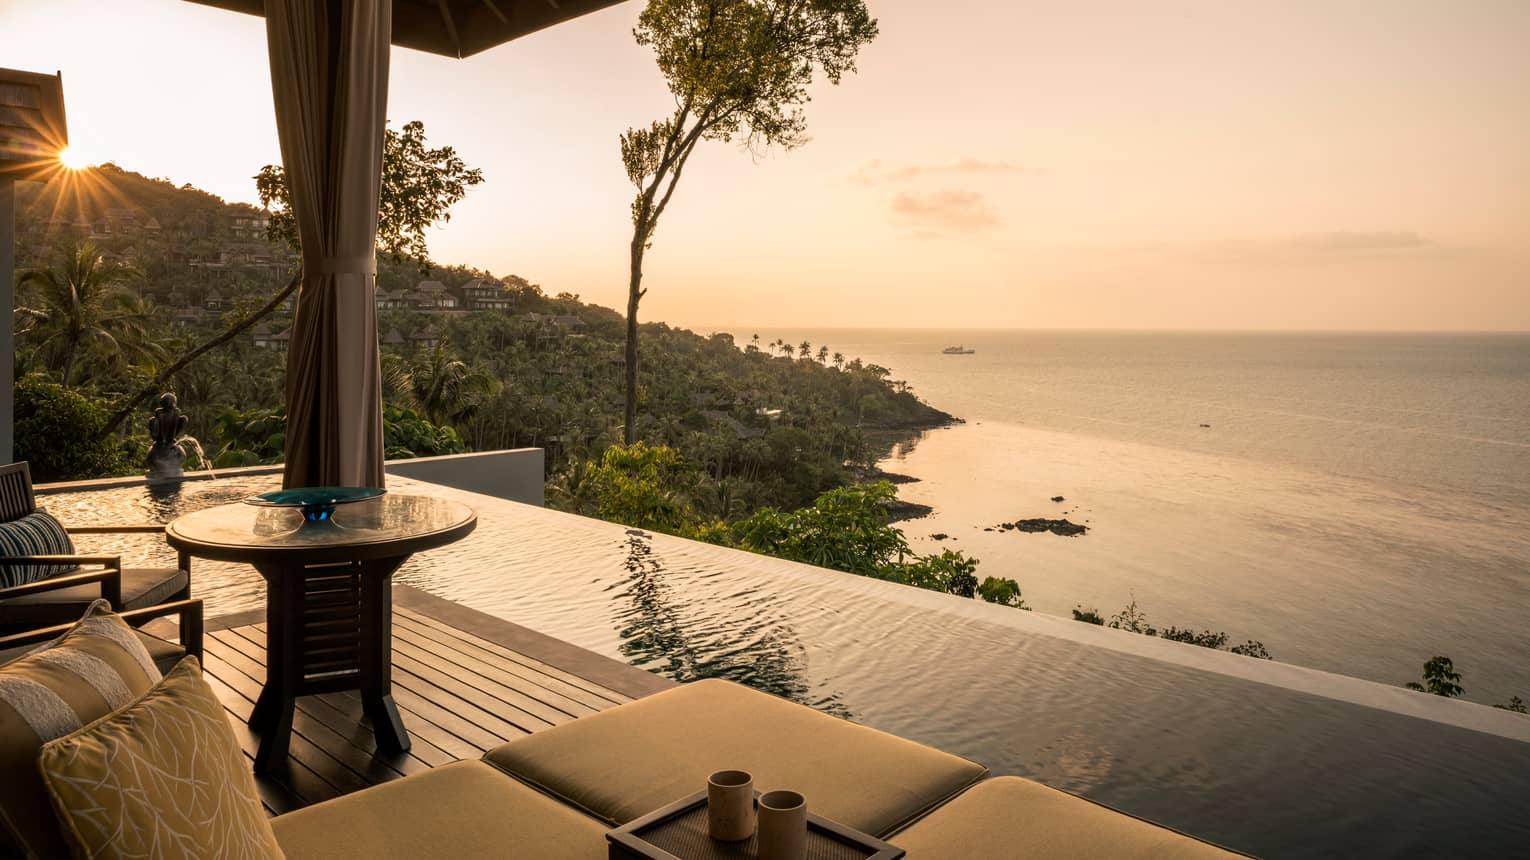 One-bedroom pool villa patio chair, infinity pool overlooking mountain, ocean at sunset